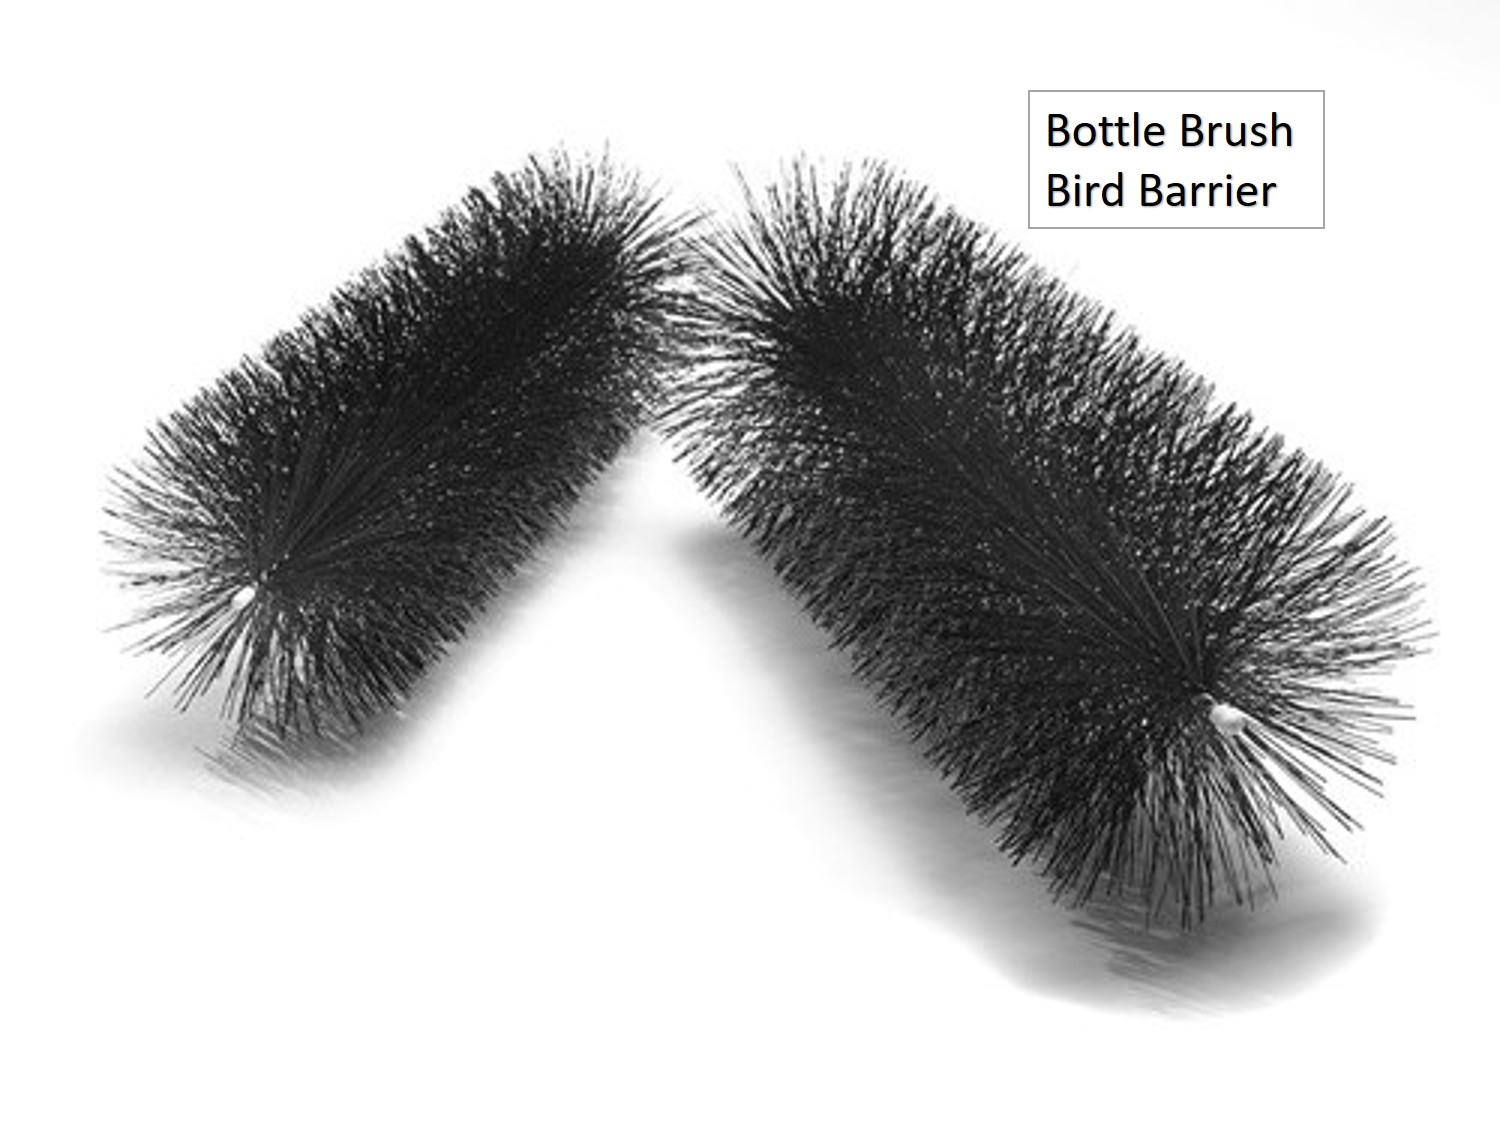 Bottle Brush Bird Barrier